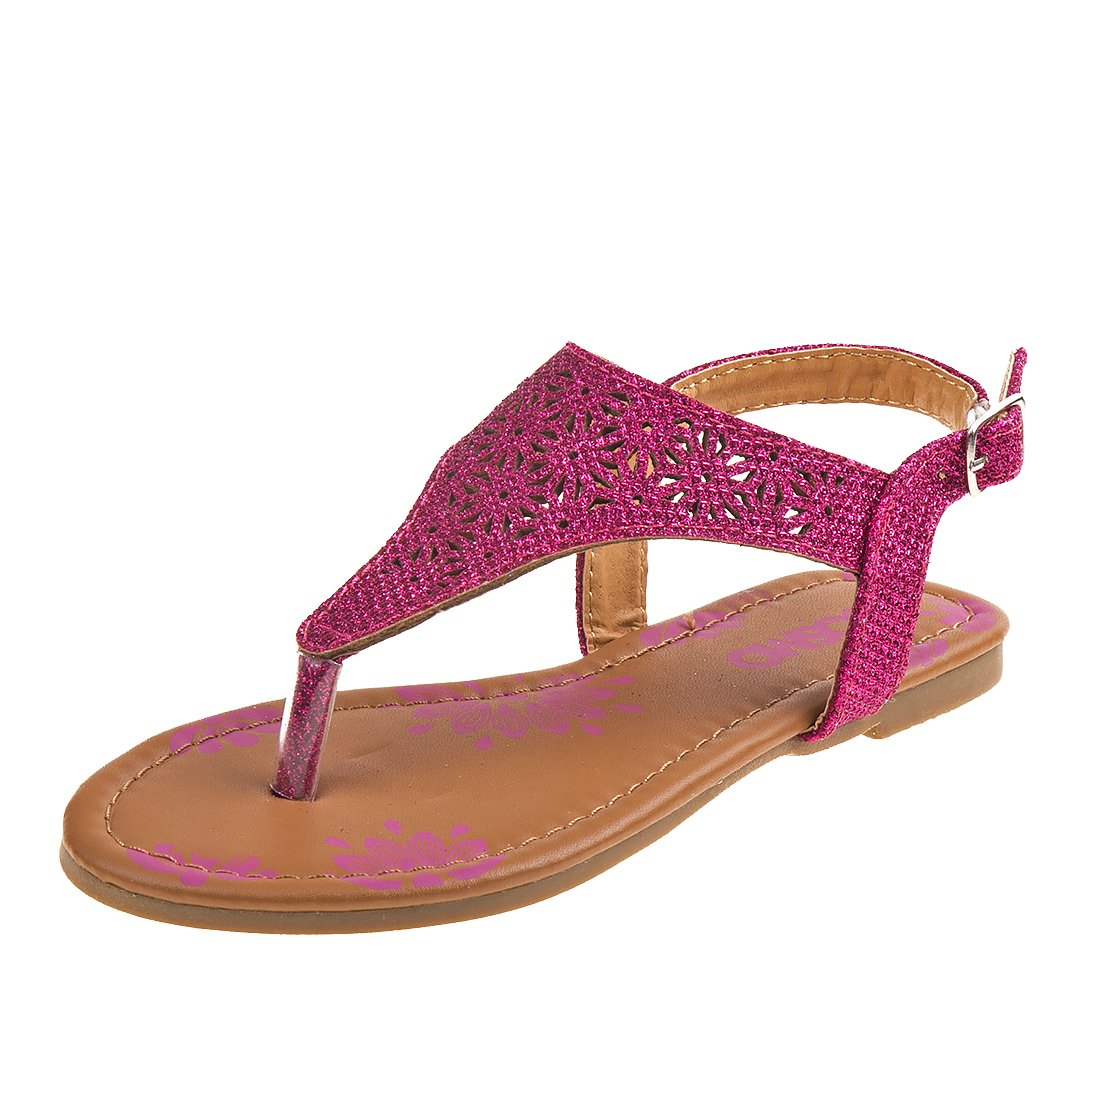 Josmo Girl's T-Strap Glitter Thong Sandals, Pink, 3 M US Big Kid'